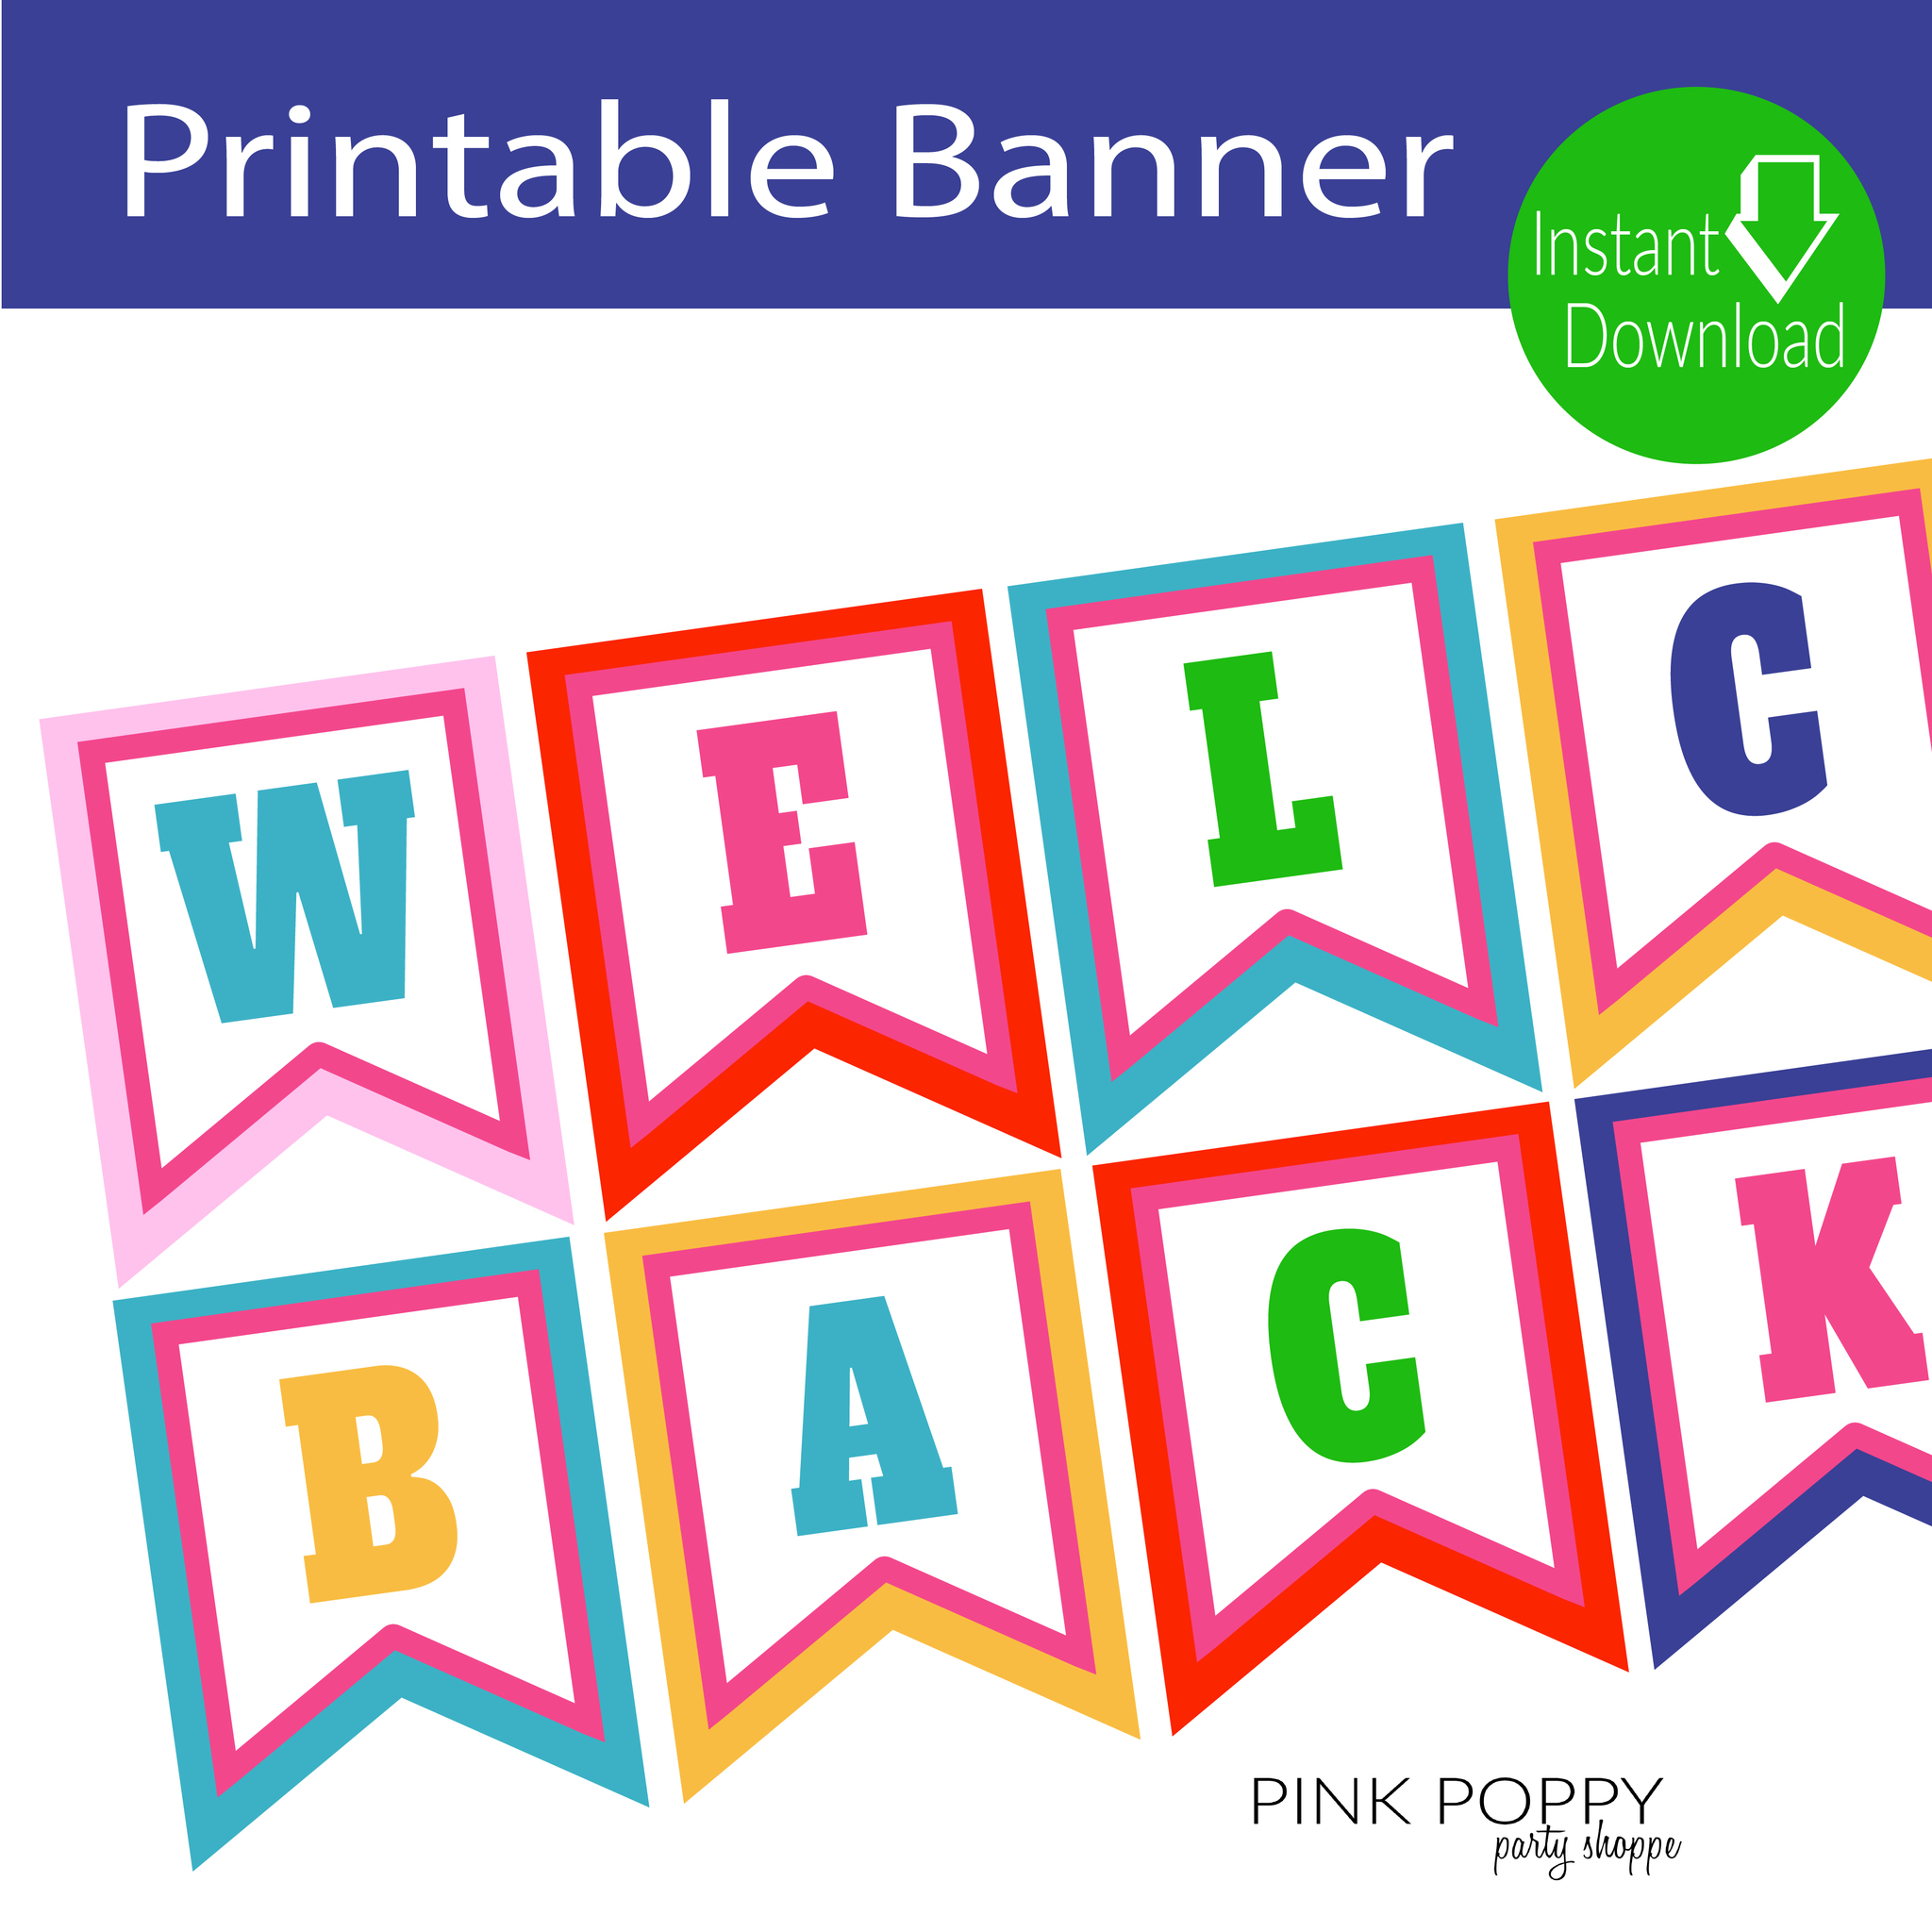 Free Printable Welcome Banner Template | Template Business - Free Printable Banner Templates